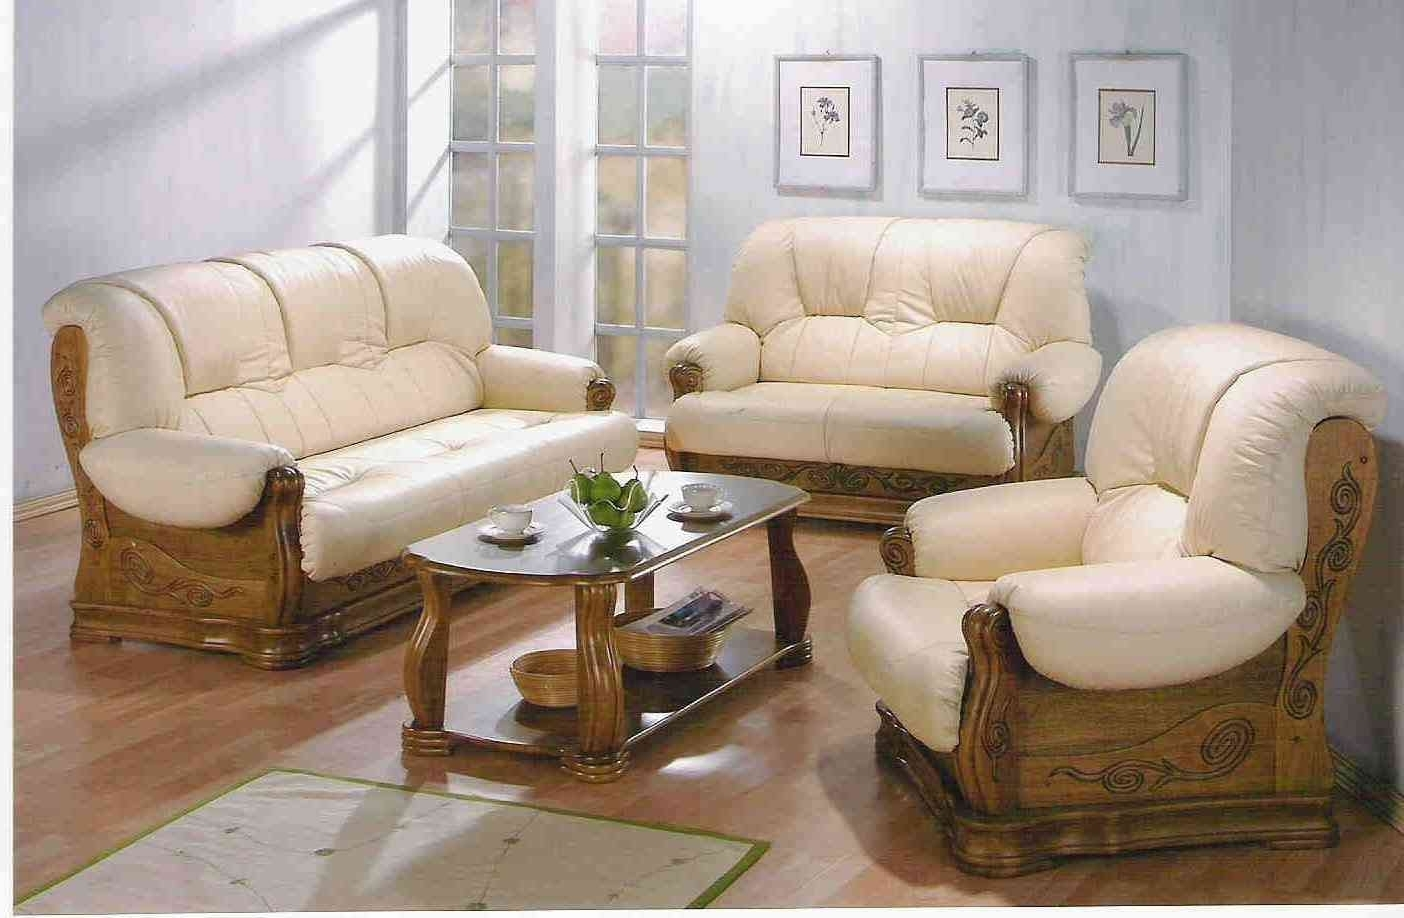 Preferred Casual Sofas And Chairs Regarding Chairs : Traditional Wooden Sofa Set Designs Couch Traditional (View 5 of 20)